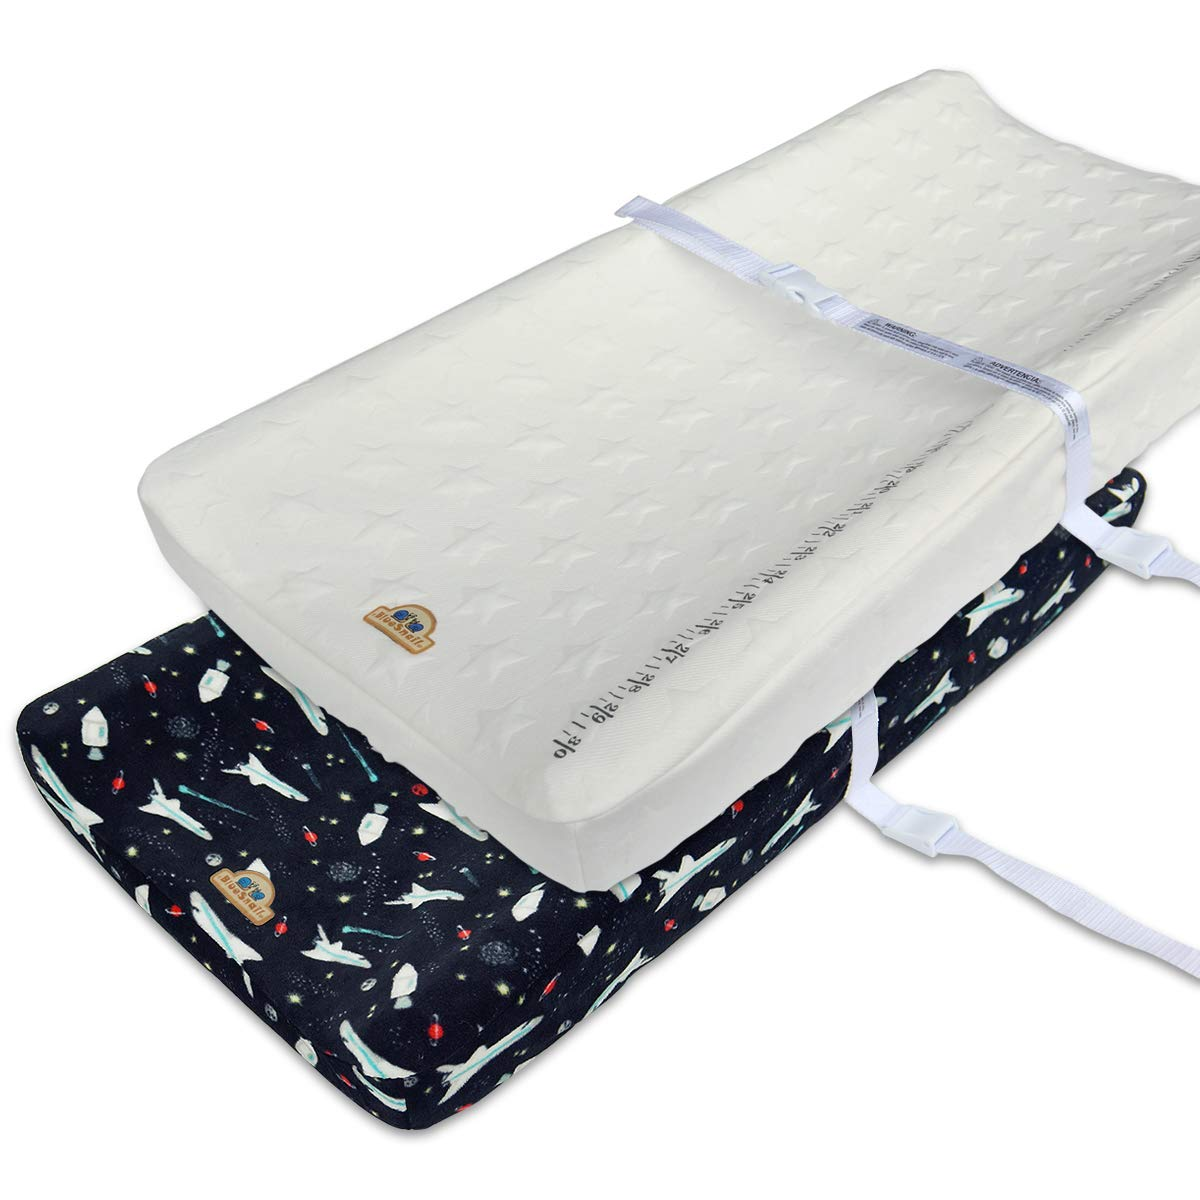 Shaoxing Limeipark Hometextile /& Garments Co red+Grey BlueSnail Plush Super Soft and Comfy Changing Pad Cover for Baby 2-Pack Ltd.